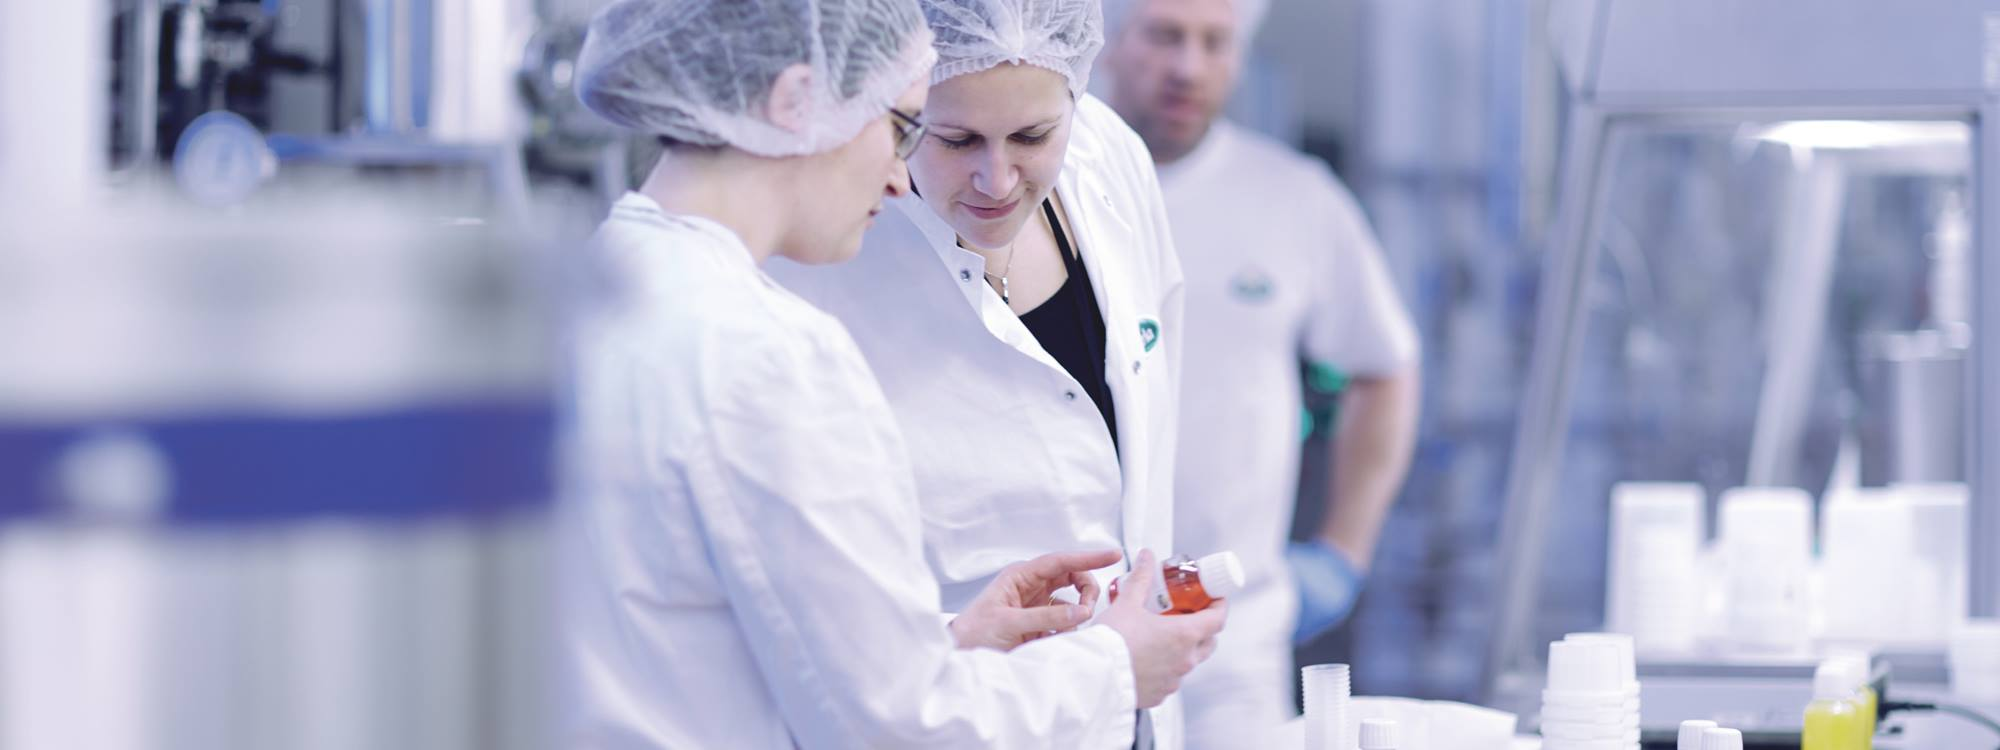 Health foods, capabilities, One of the world's most advanced hydrolysates factories